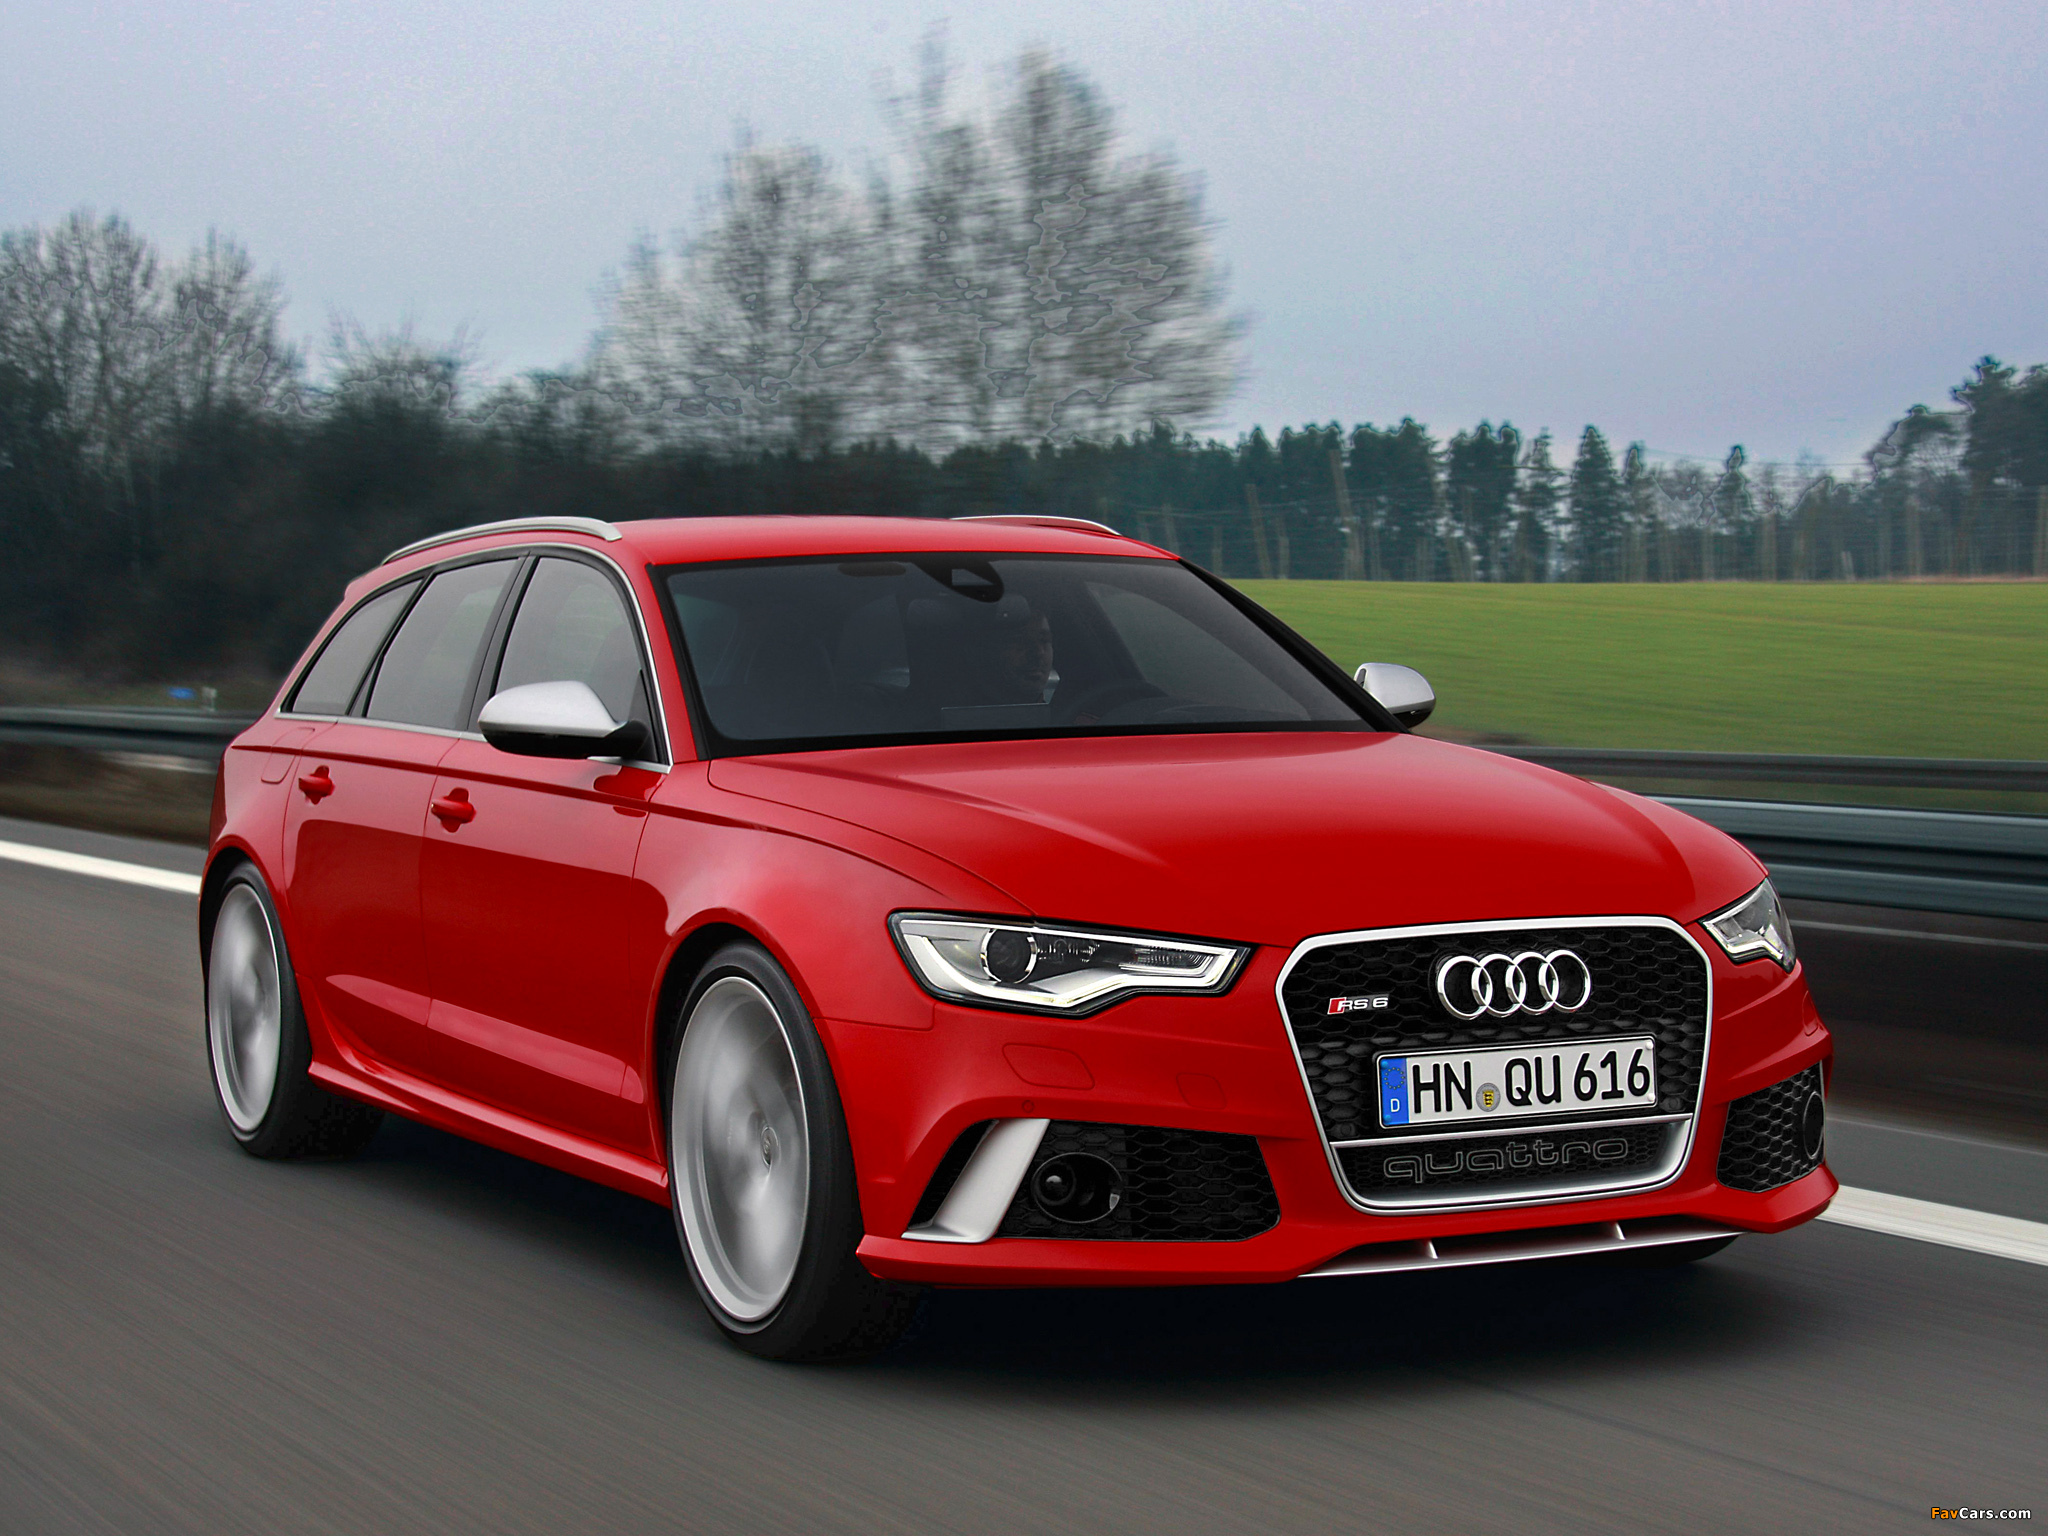 Audi Rs6 Avant 4g C7 2013 Wallpapers 2048x1536